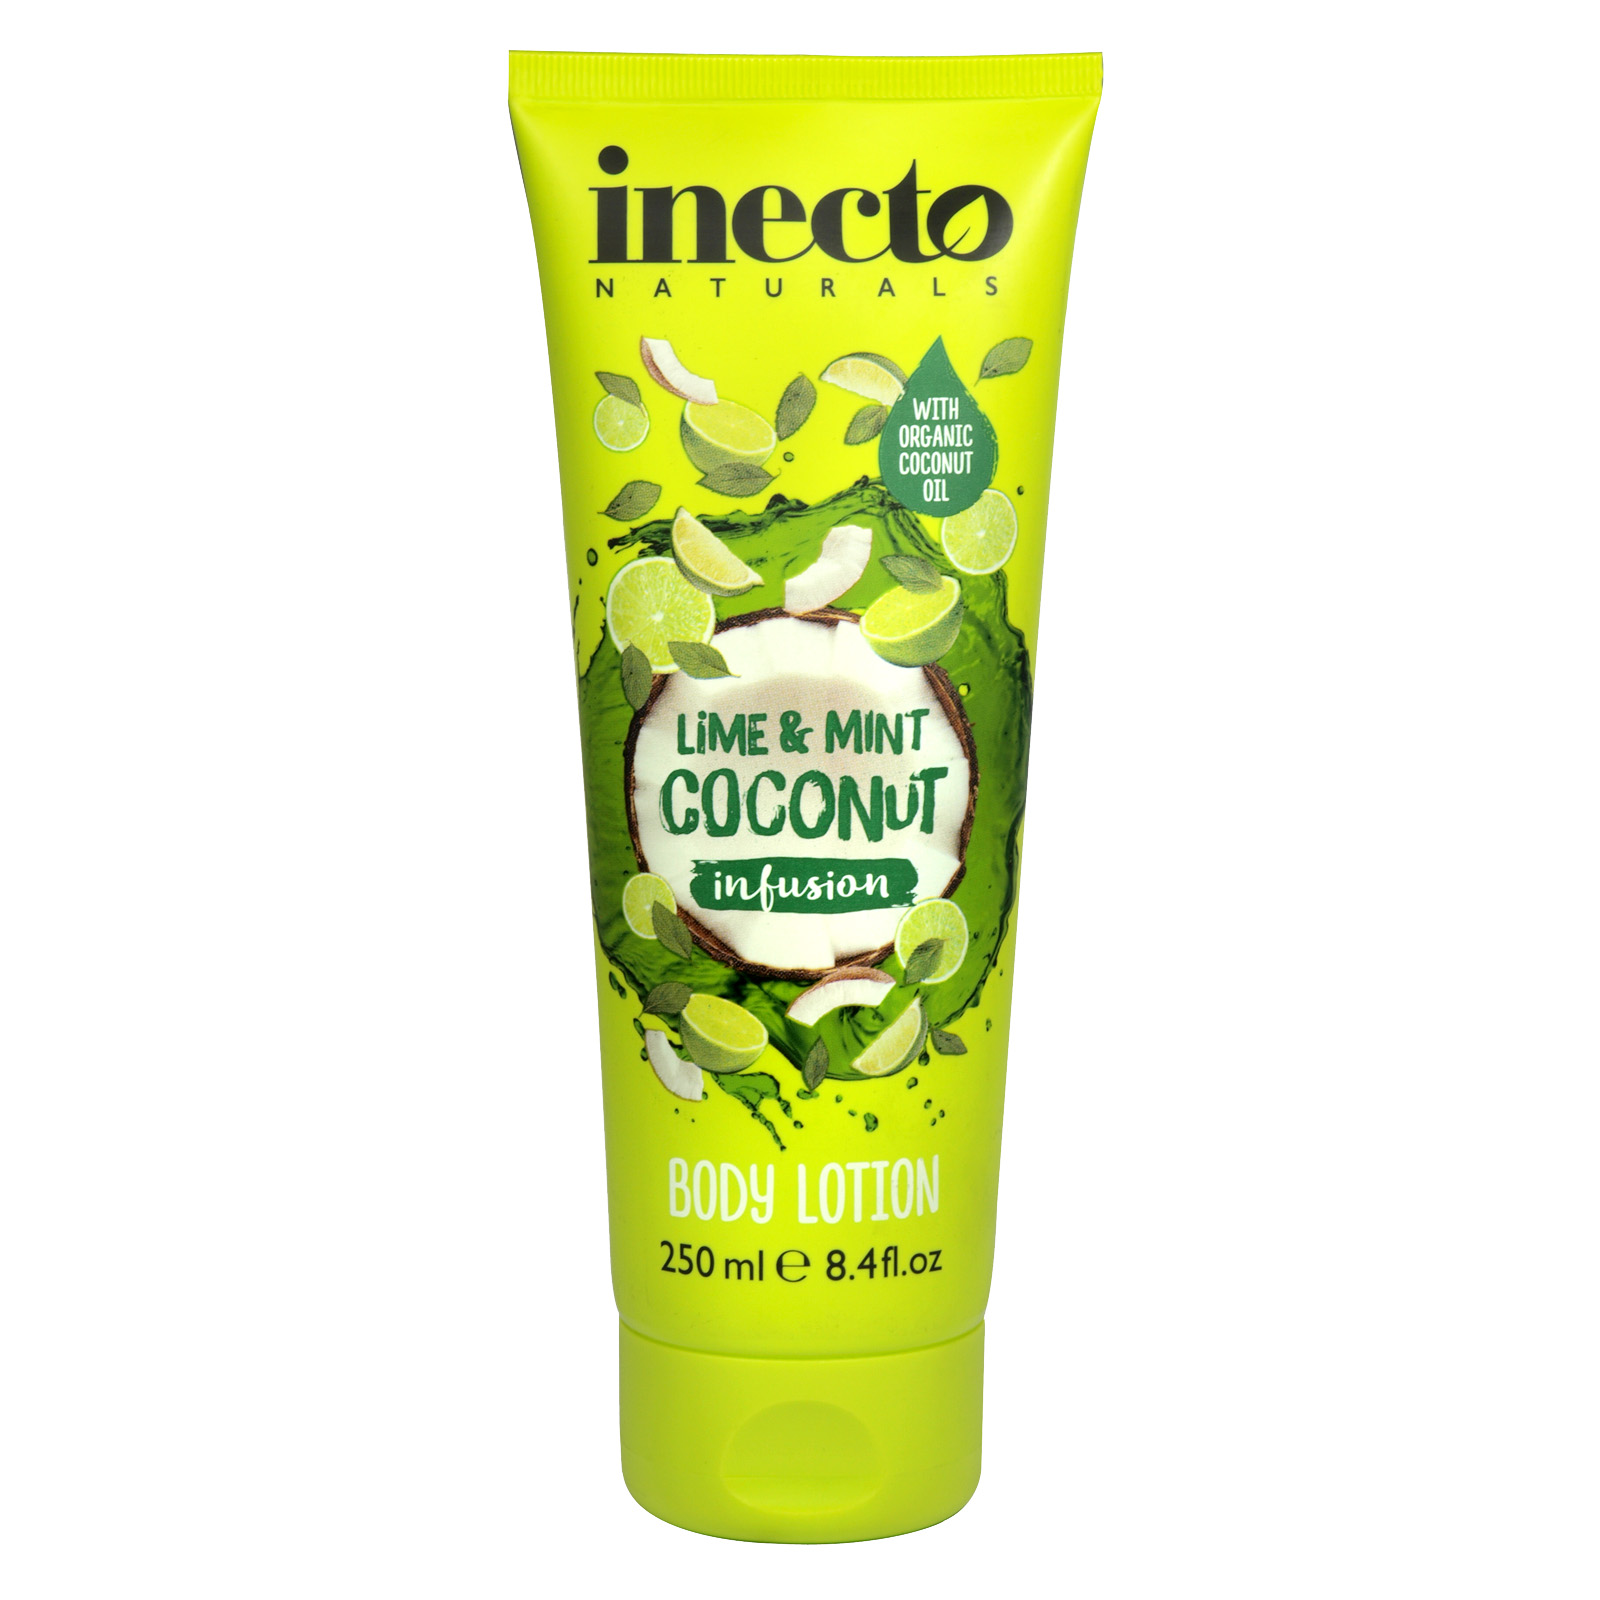 INECTO NATURALS 250ML BODY LOTION LIME+MINT+COCONUT INFUSION X6